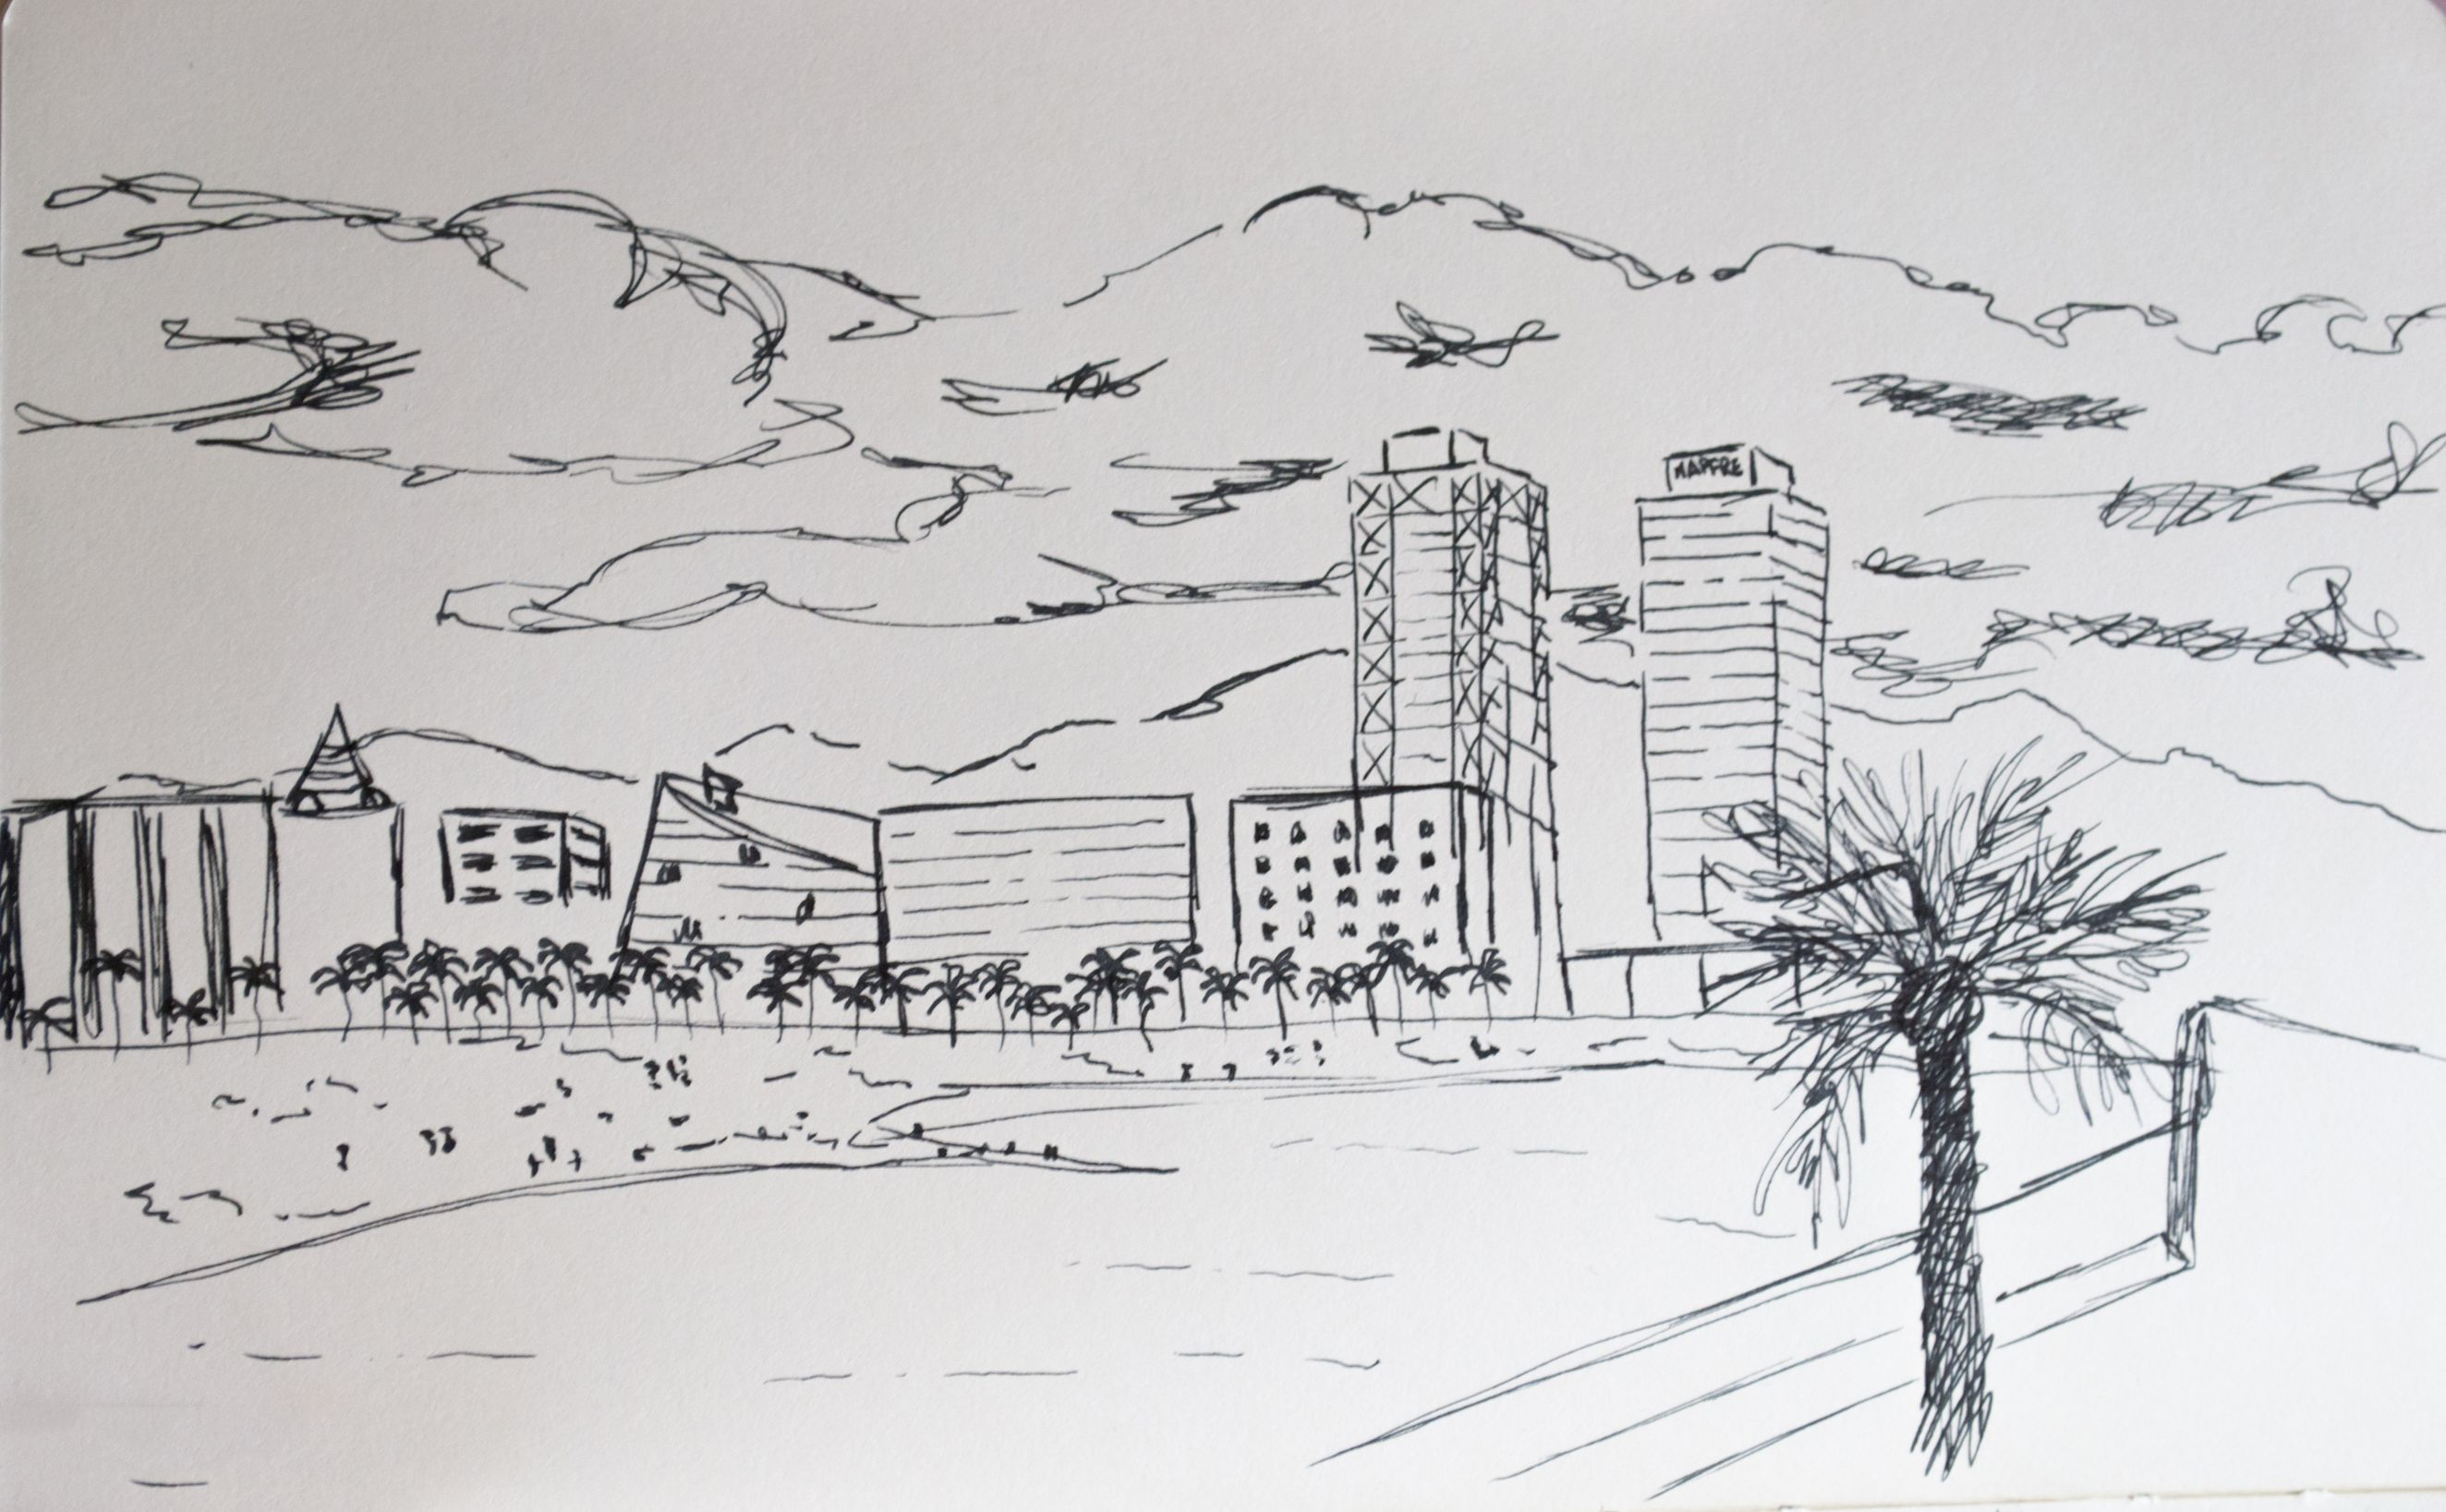 Maphre Towers, Barceloneta beach. Barcelona. Landscape made with pen, fast sketch.